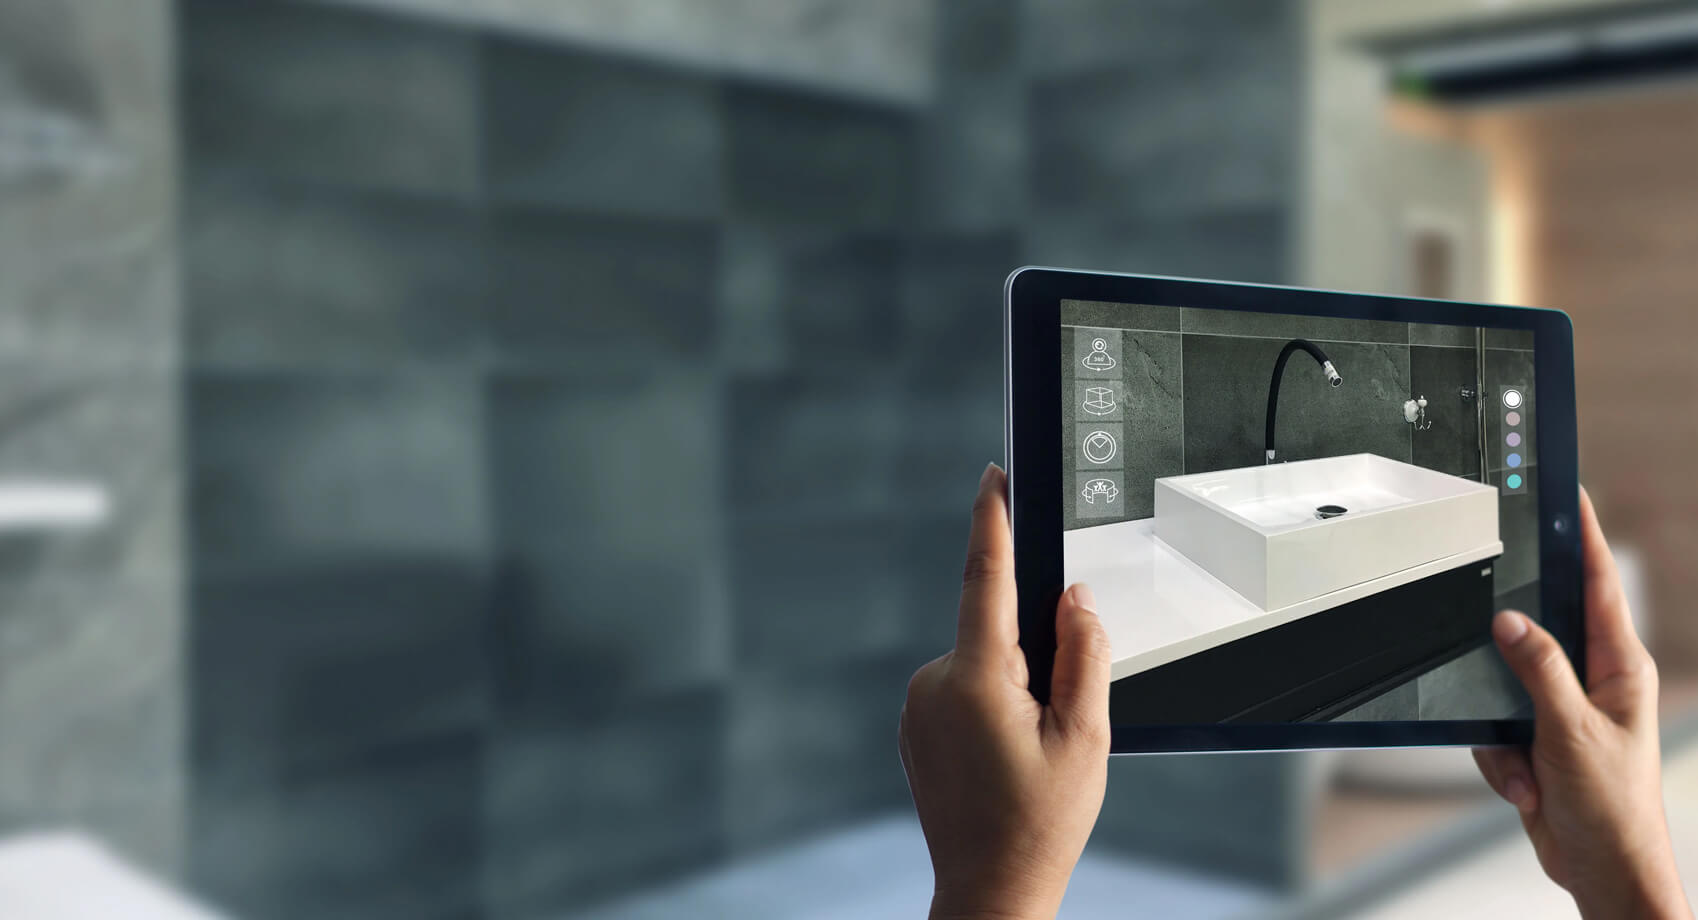 Augmented Reality trends in eCommerce. How pandemic may play out throughout 2021 and beyond